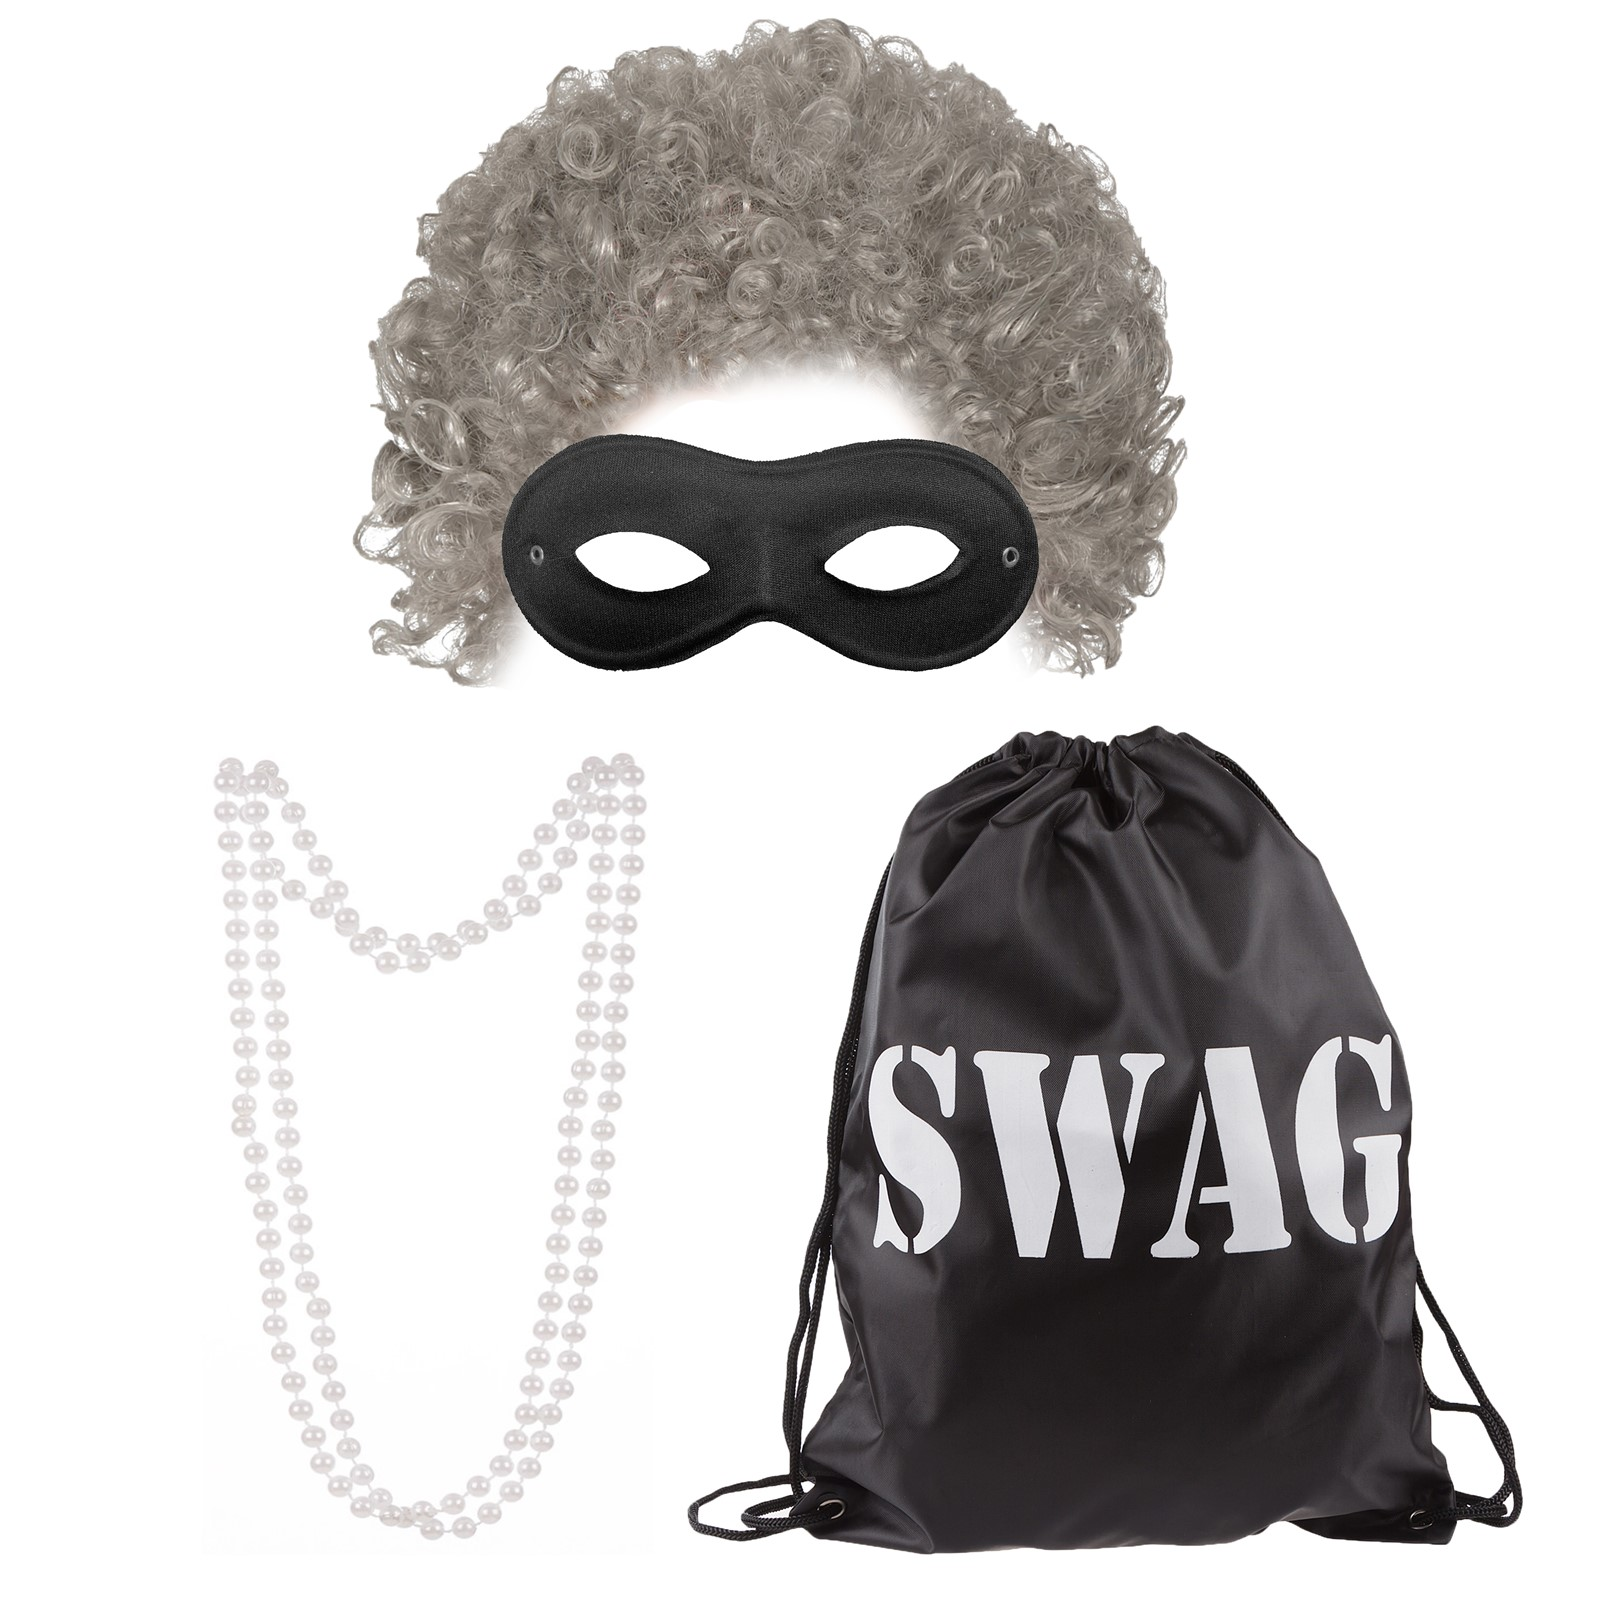 GRANNY AFRO MASK PEARLS SWAG BAG STICK OLD LADY WIG  WORLD BOOK DAY GANG THIEF